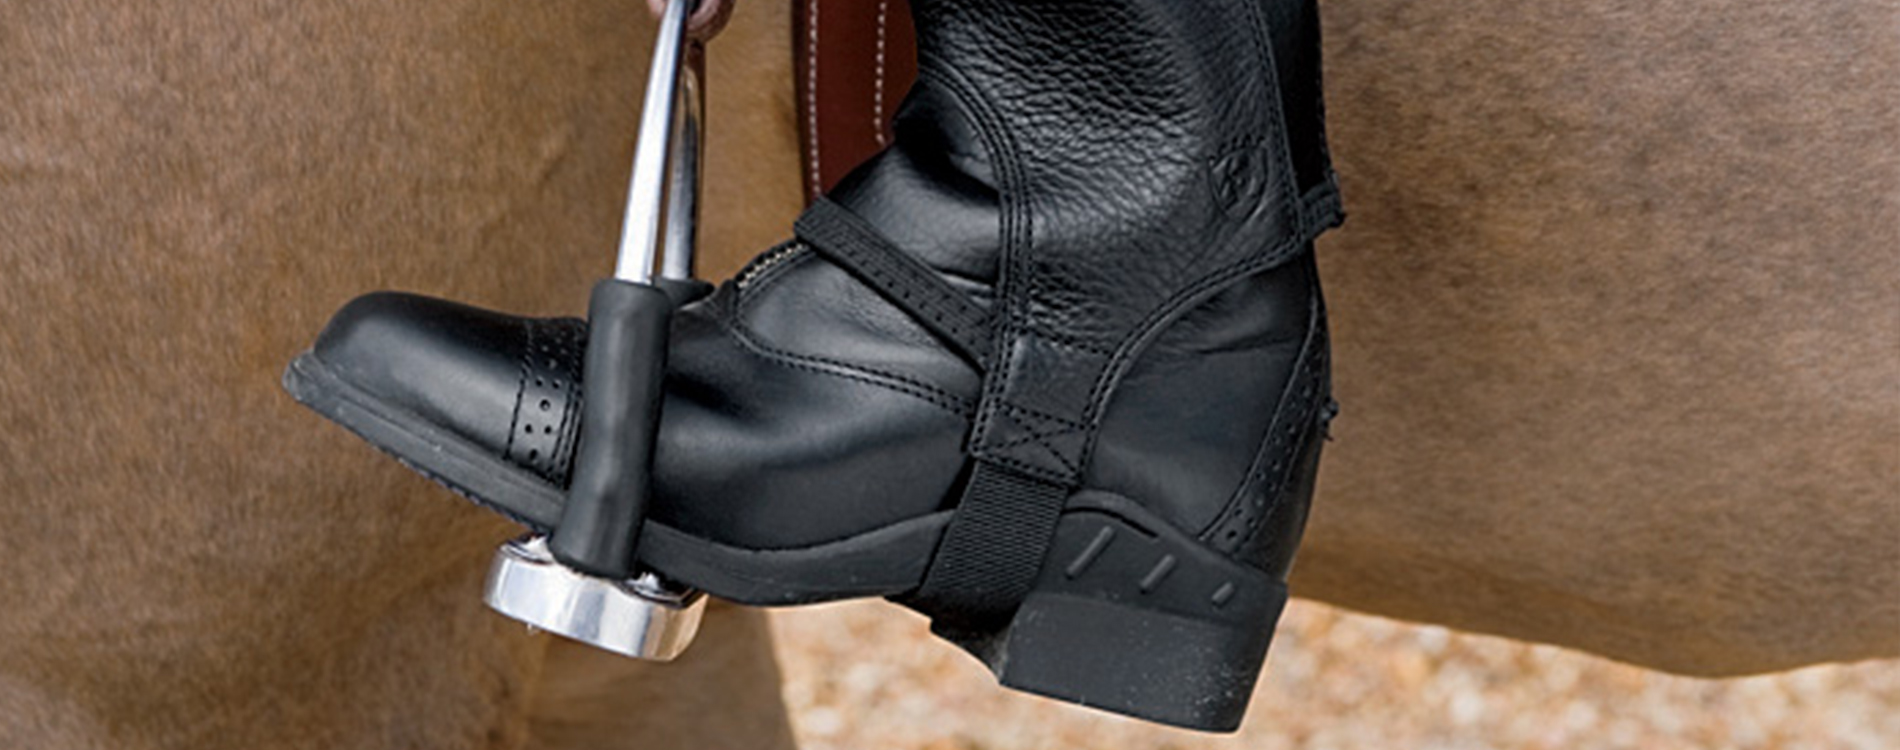 How To Measure For Your Half Chaps